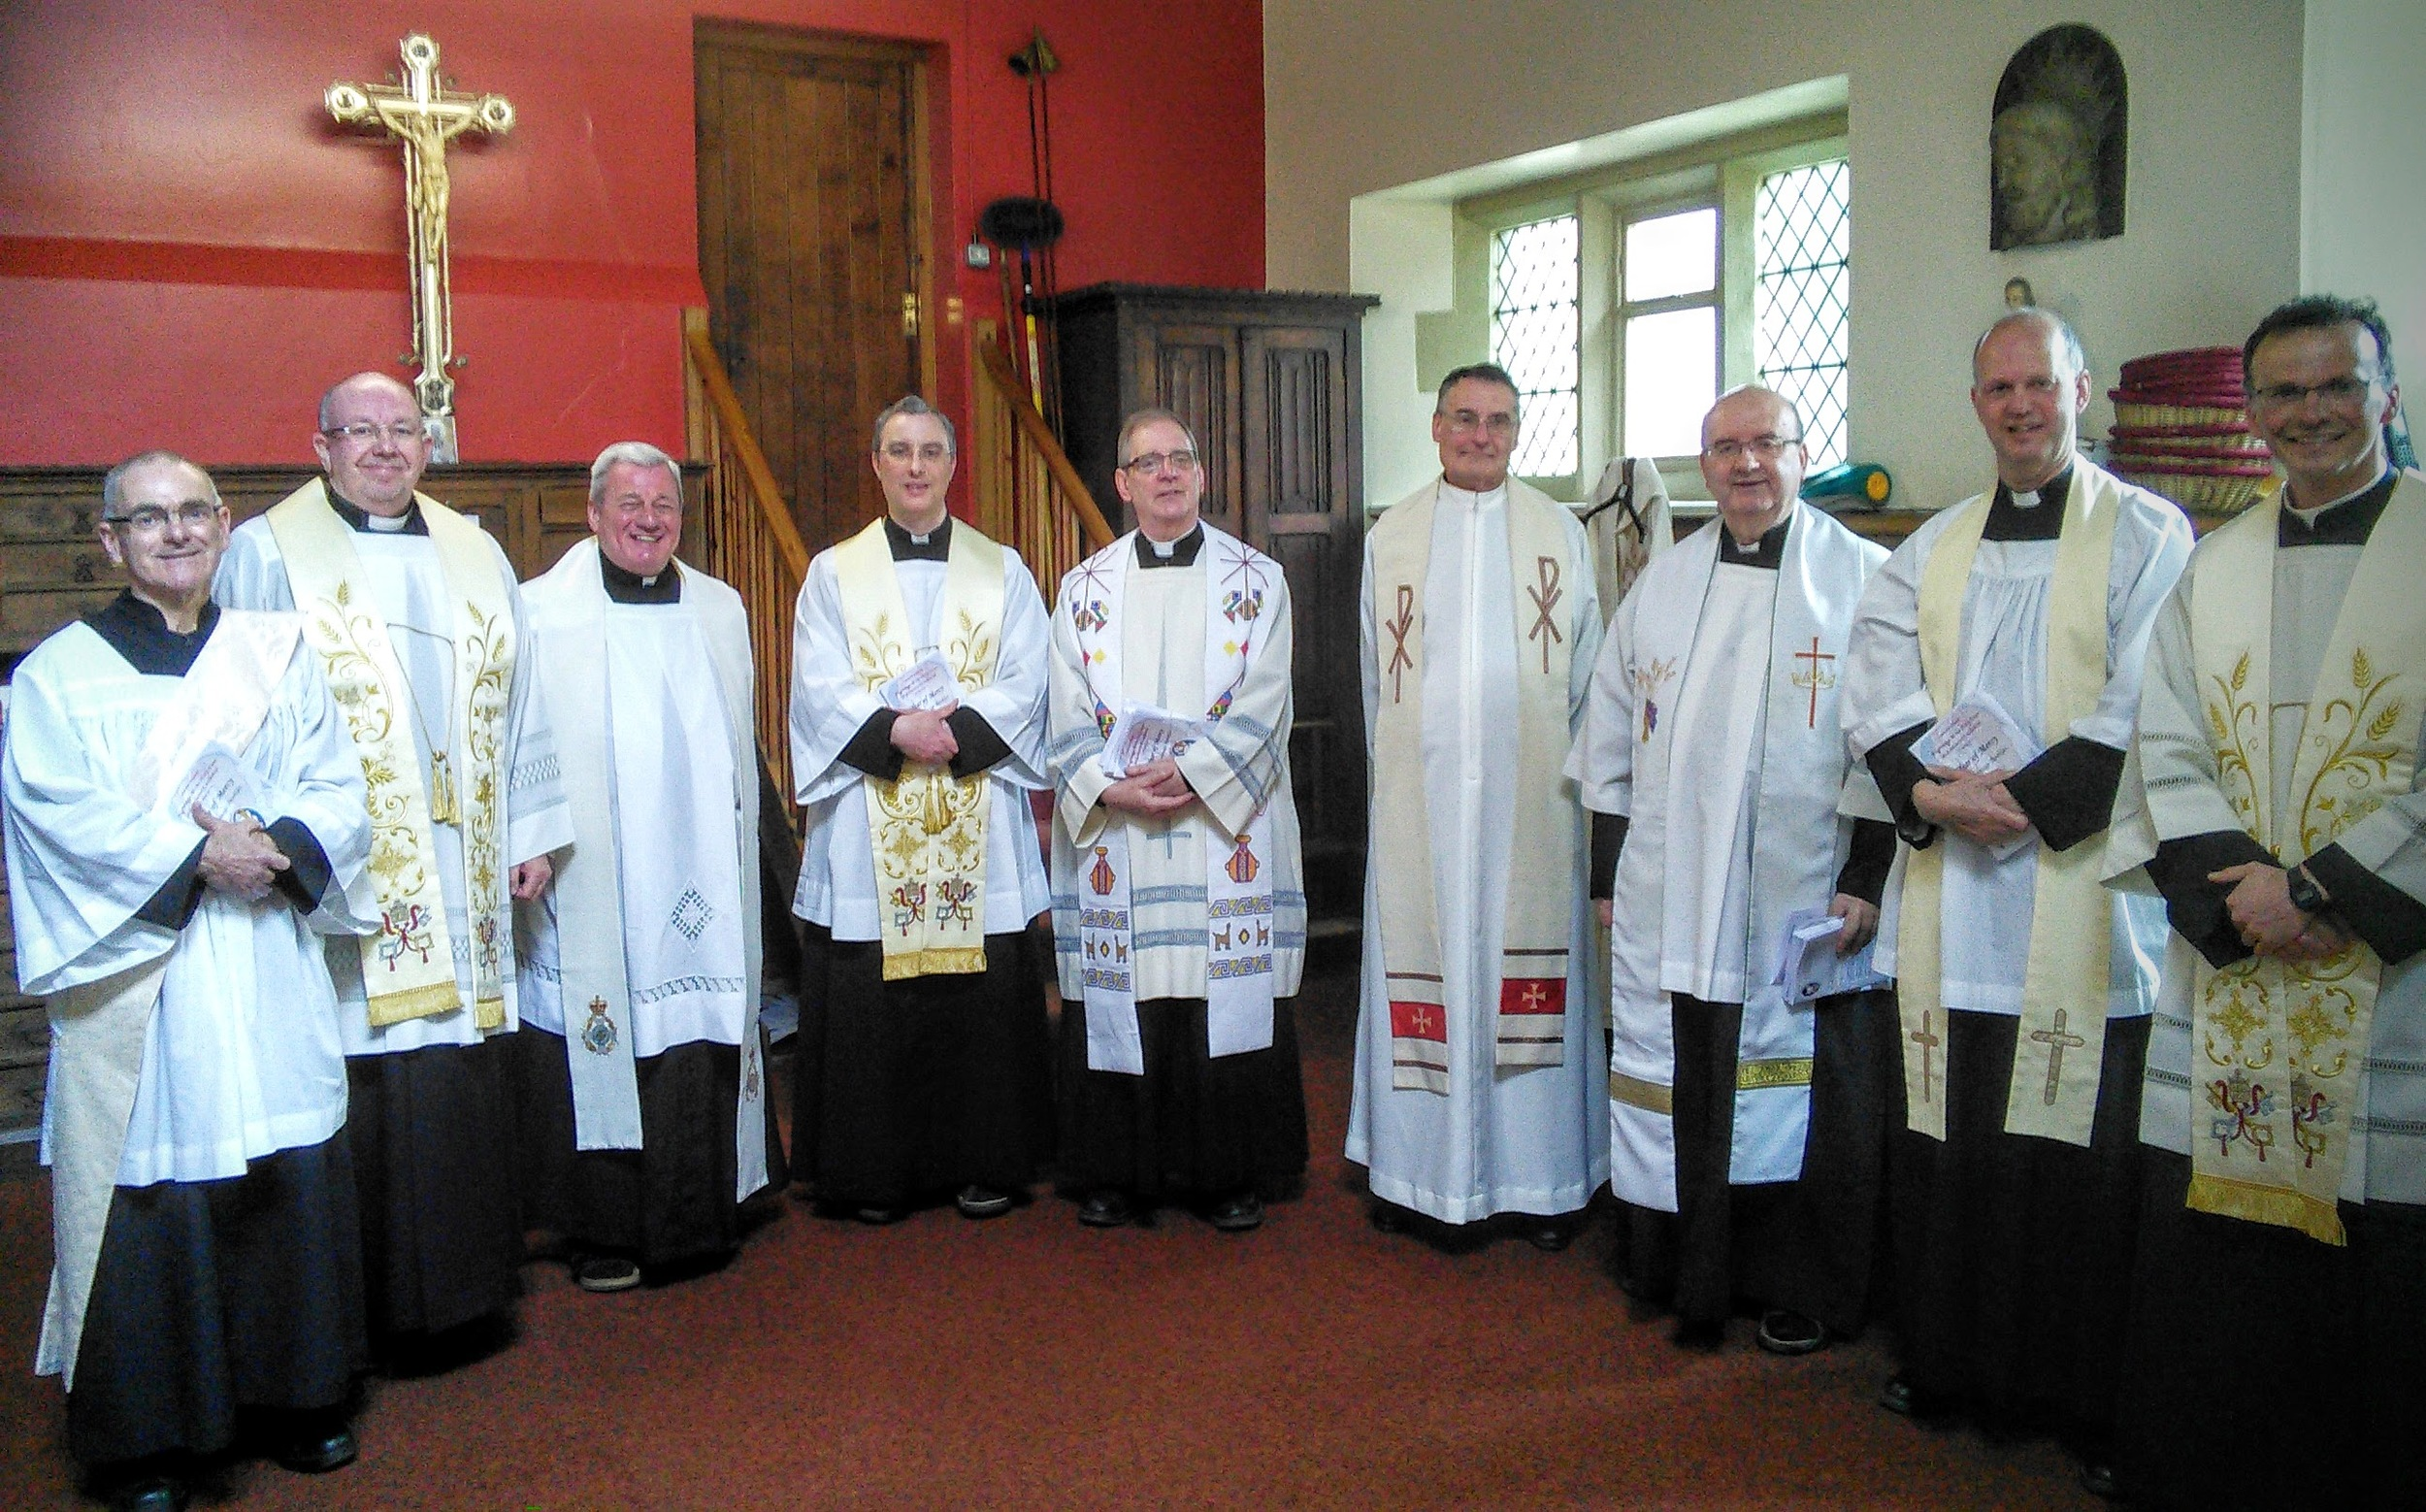 The Deanery Clergy in all their finery!